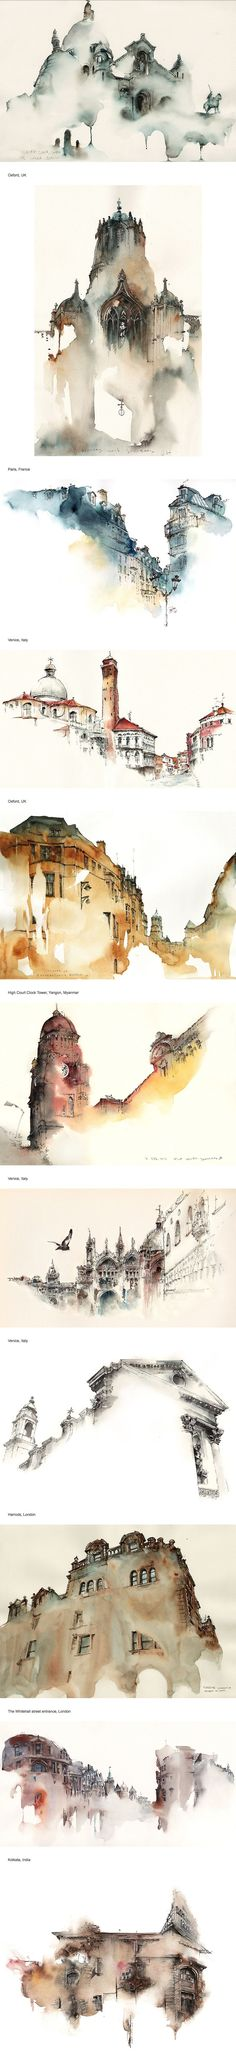 "Elusive Architecture in Watercolors of Korean Artist Sunga Park - ""allmost suga"""